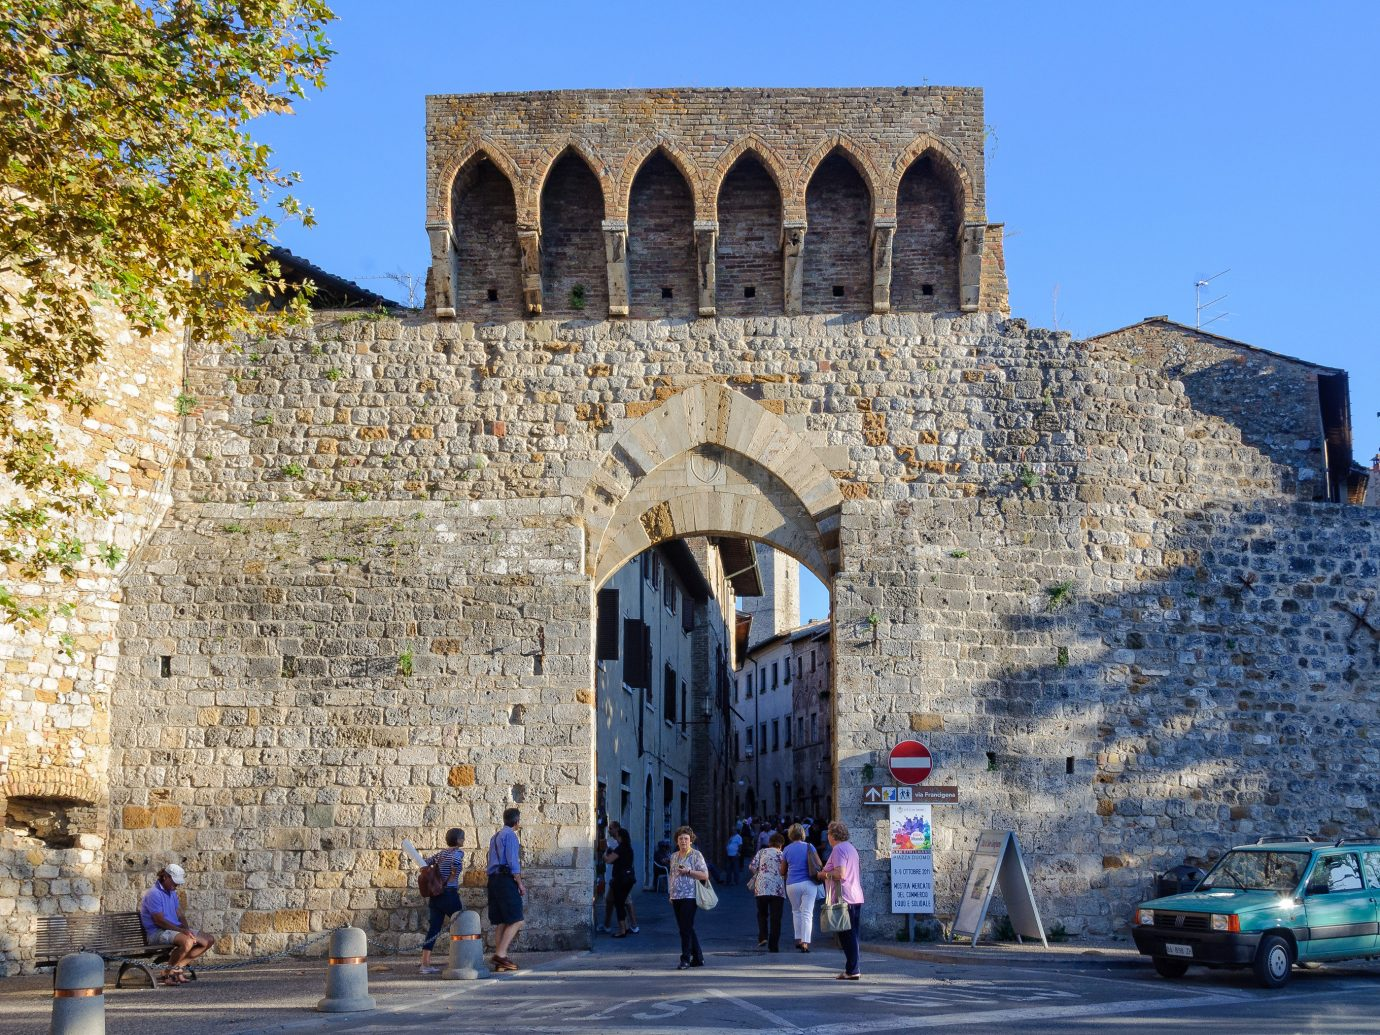 Italy Trip Ideas wall historic site medieval architecture building history sky arch fortification City facade abbey tree middle ages ancient history tourism tours Church